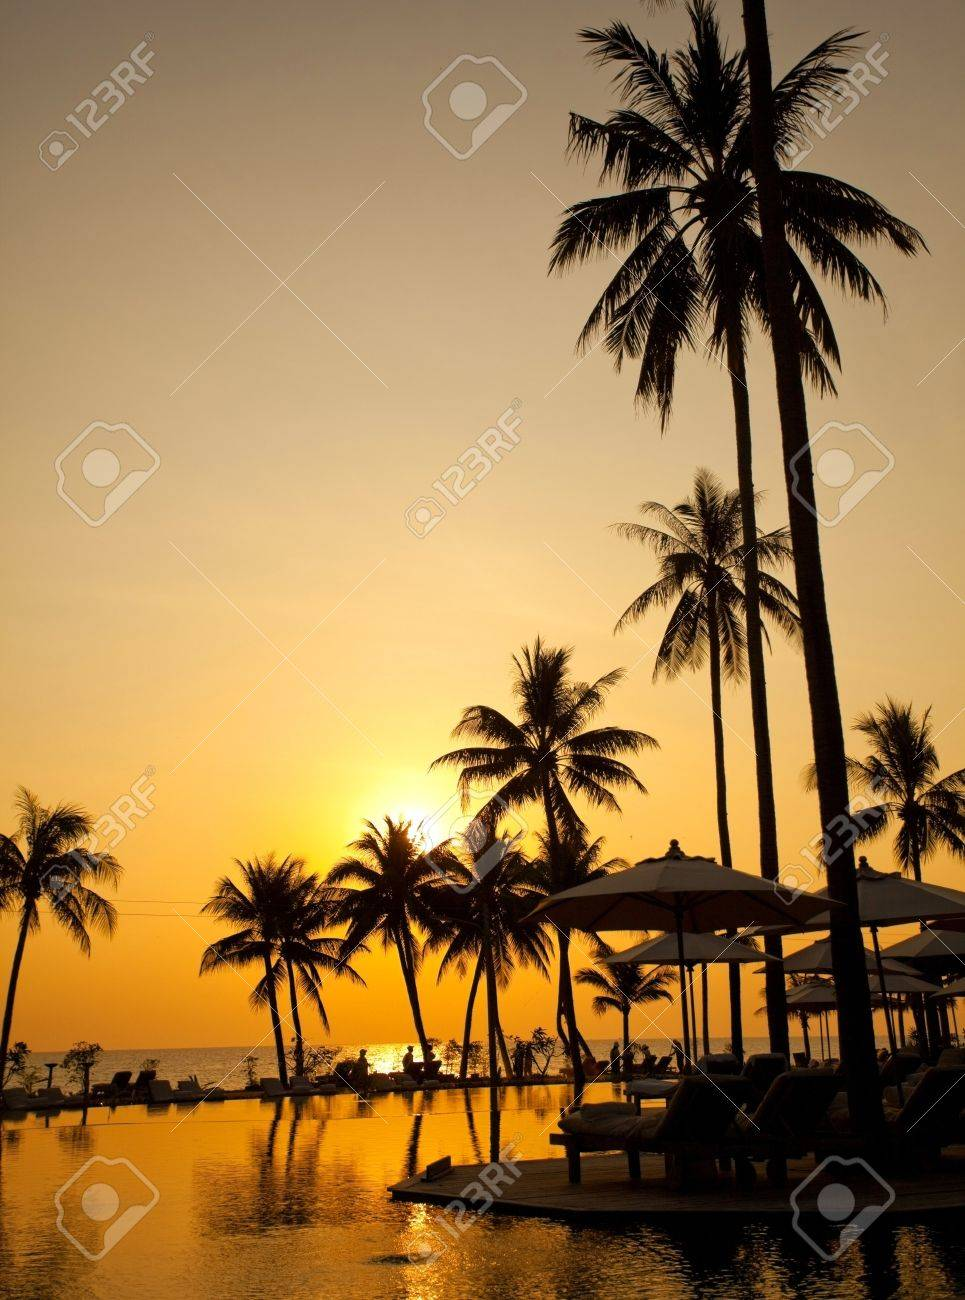 Palm forest silhouettes on sunrise Stock Photo - 9424787